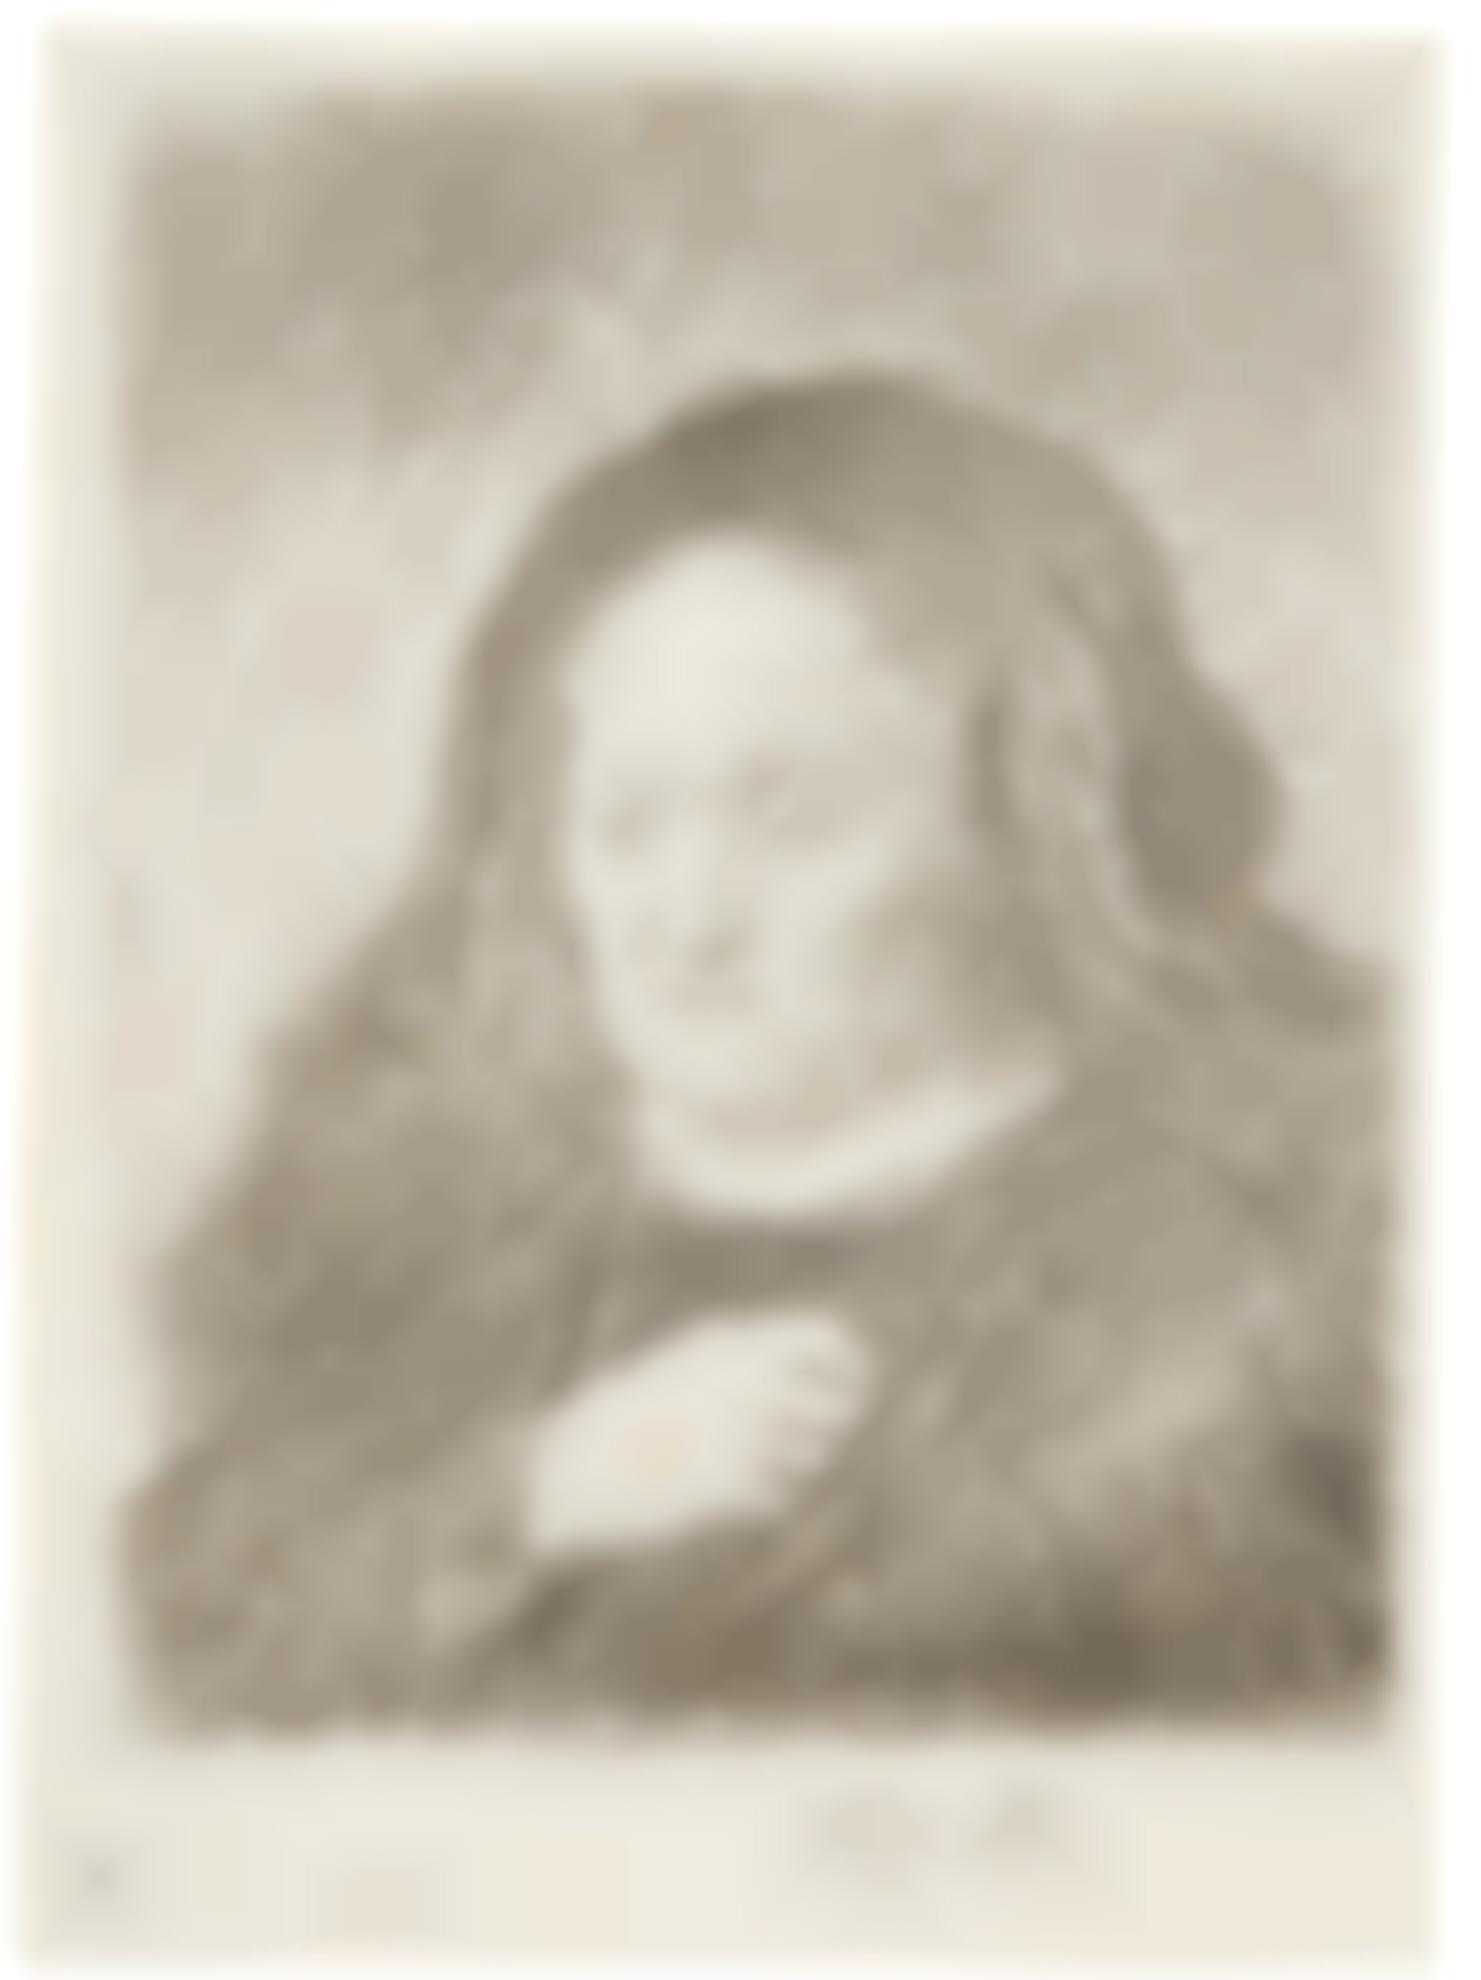 Rembrandt van Rijn-(i) The Artists Mother With Her Hand On Her Chest, A Counterproof; And The Artists Mother, Head And Bust: Three Quarters Right (B., Holl. 349, 354; (New Holl. 87, 5; H. 50, 1); (ii) New Holl. 5; (iii) The Artist's Mother with her Hand on her Chest (New Holl. 87); (iv) Bald Man in a Fur Cloak: Bust (New Holl. 99W)-1631